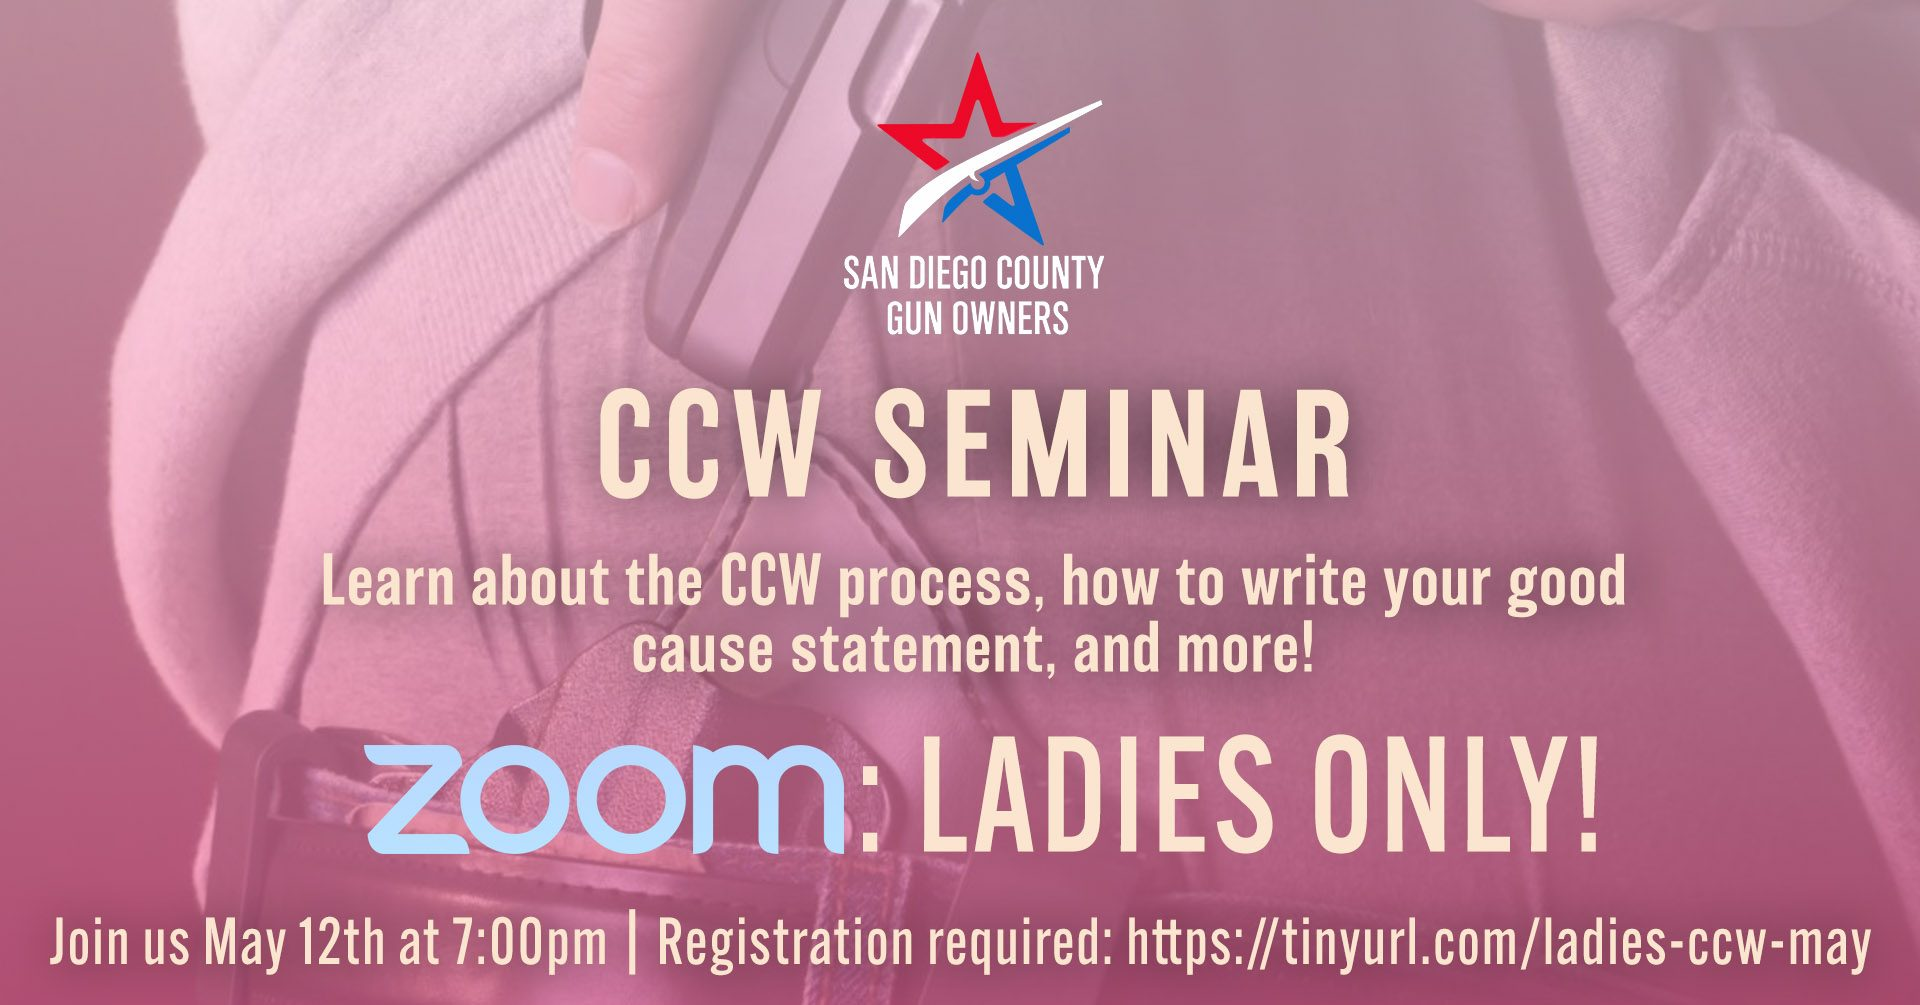 SD_CCW_May_Ladies